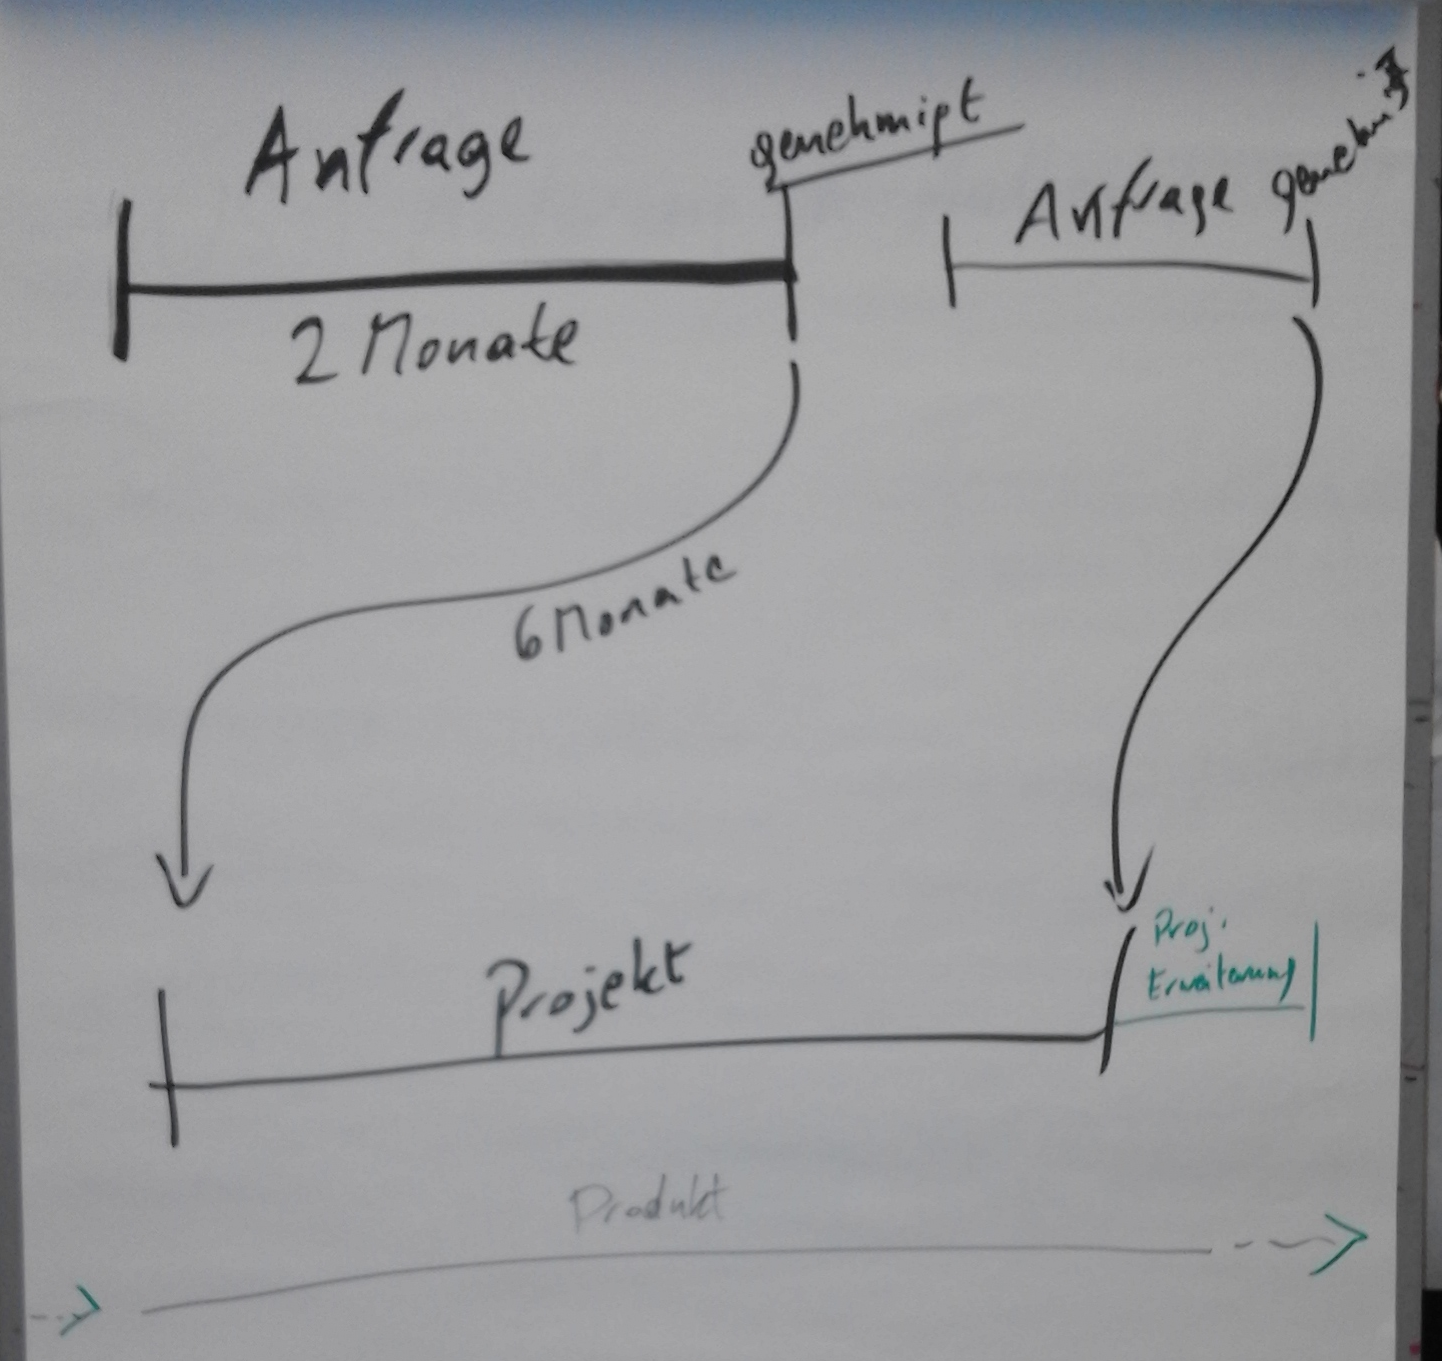 approval process in the context of timelines